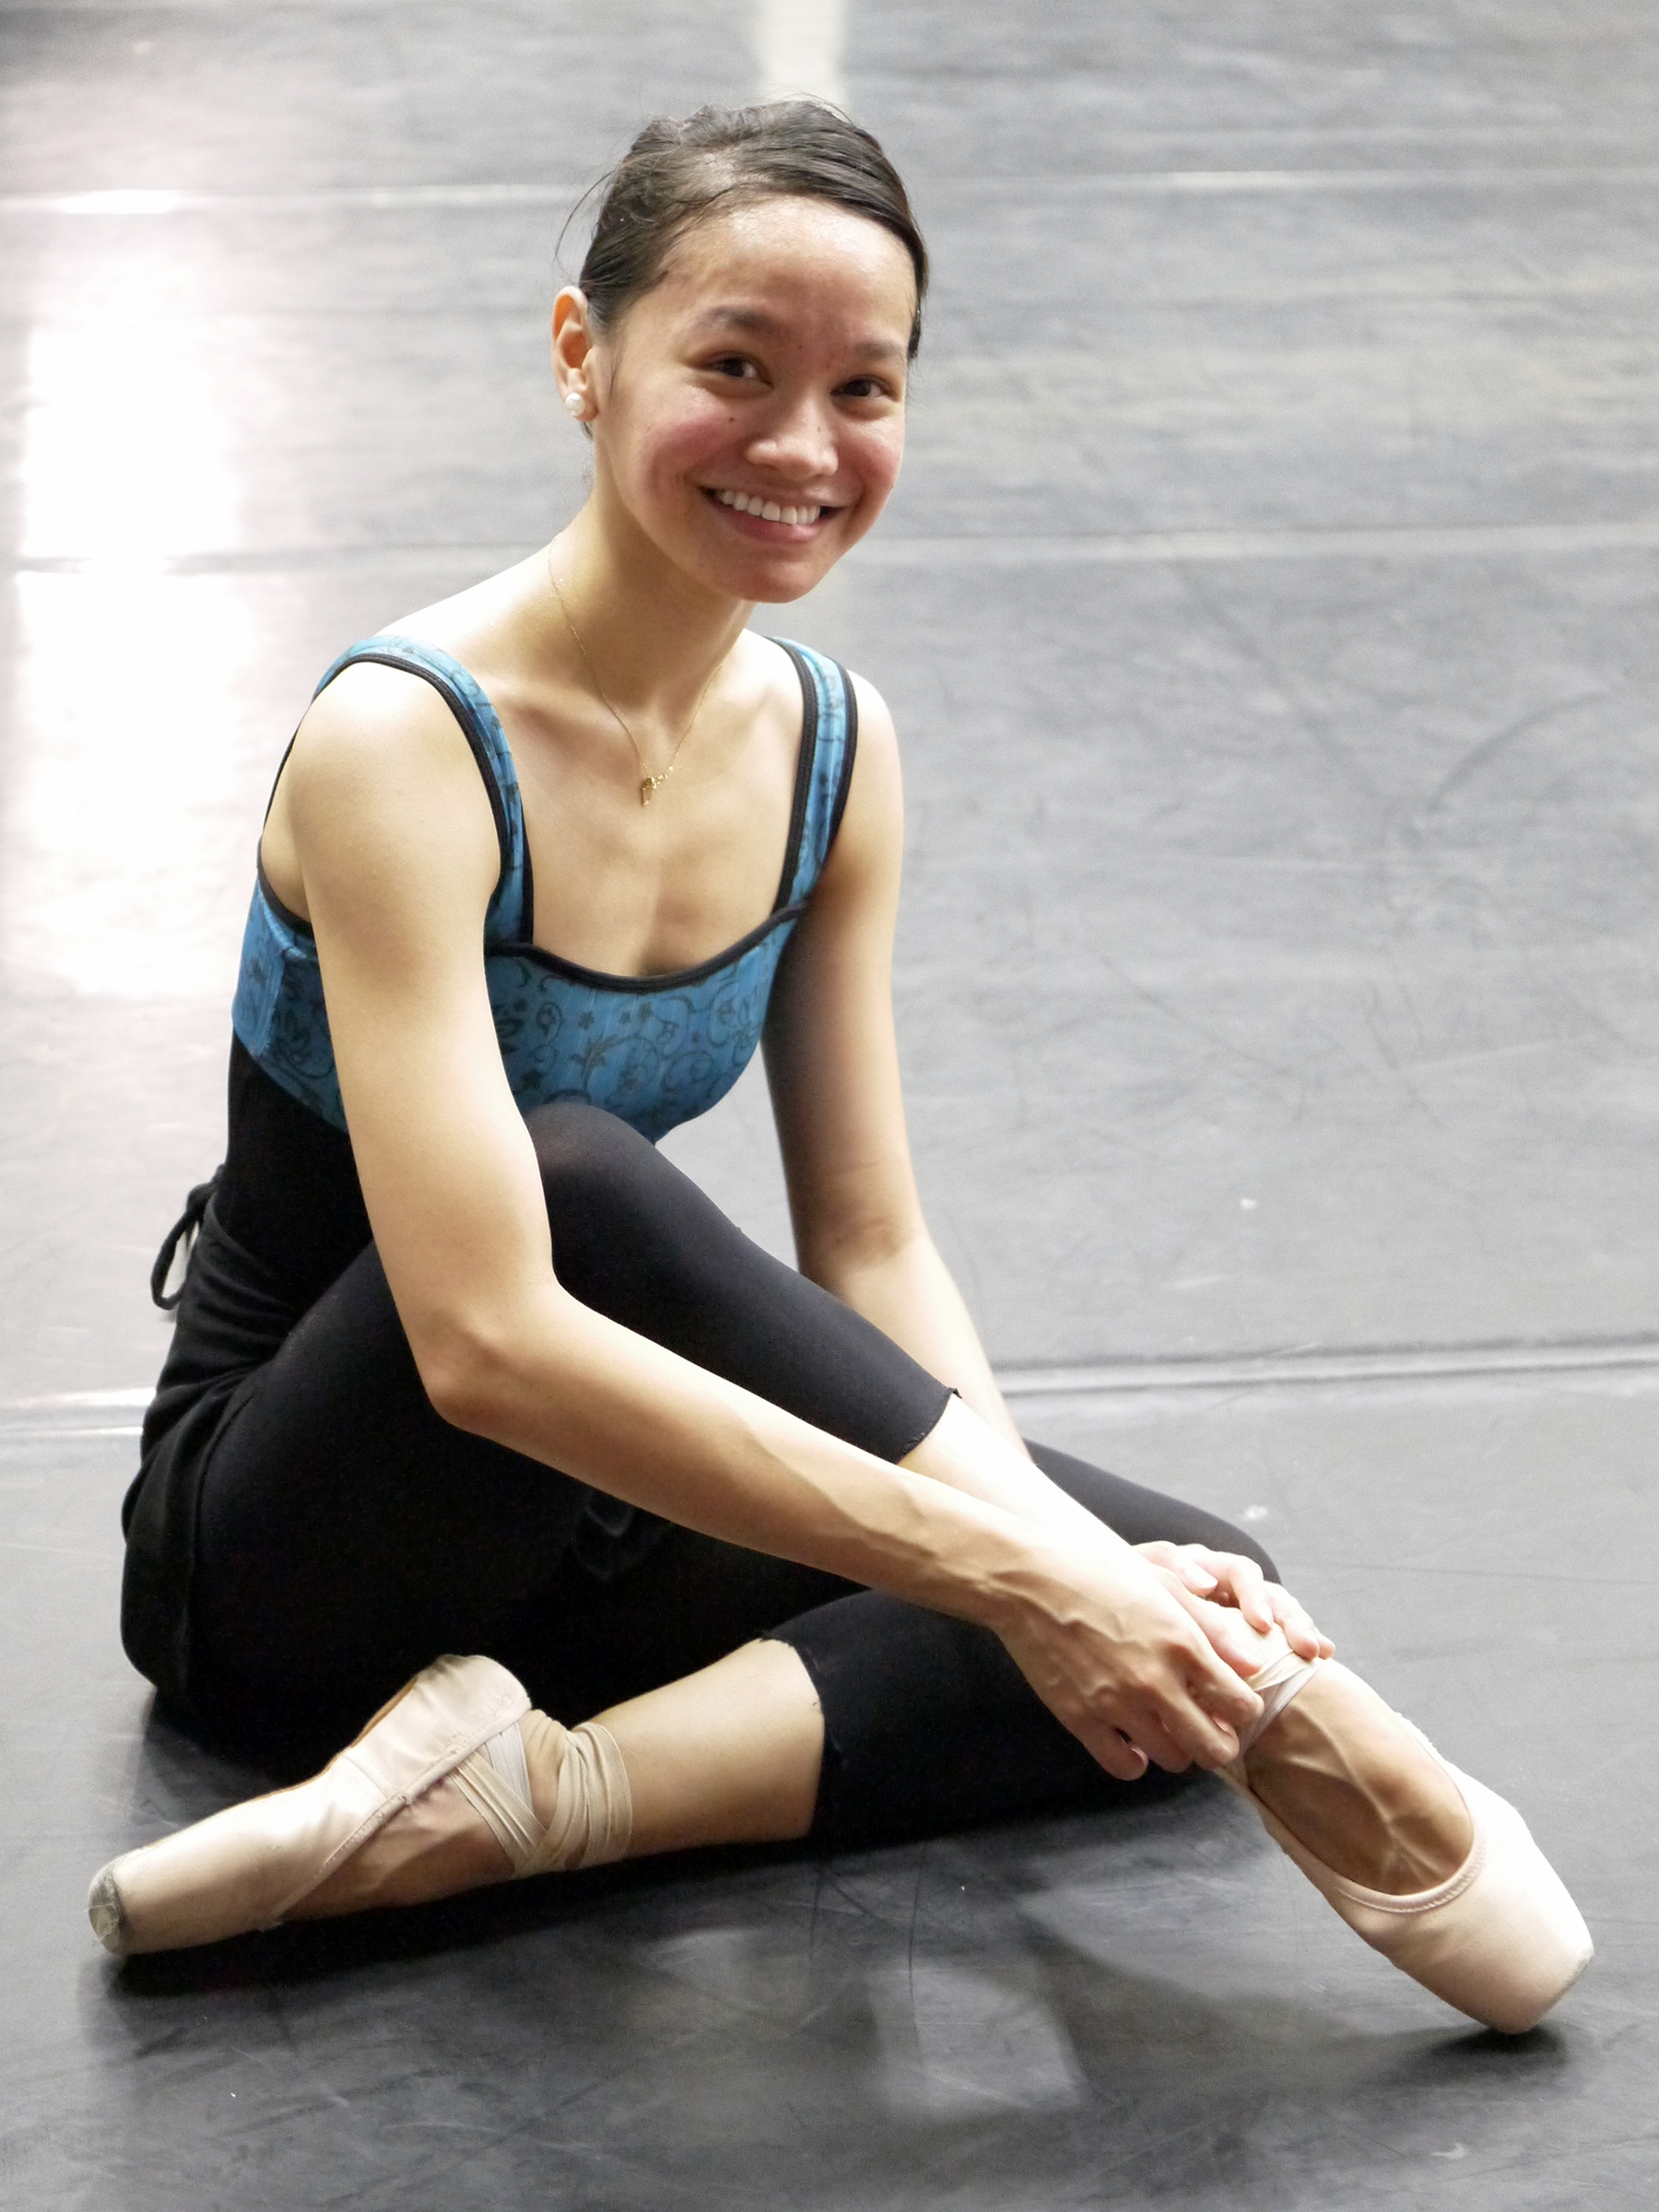 awna likes using Gaynor Minden pointe shoes because she gets to use them again and again. Photo by Giselle P. Kasilag